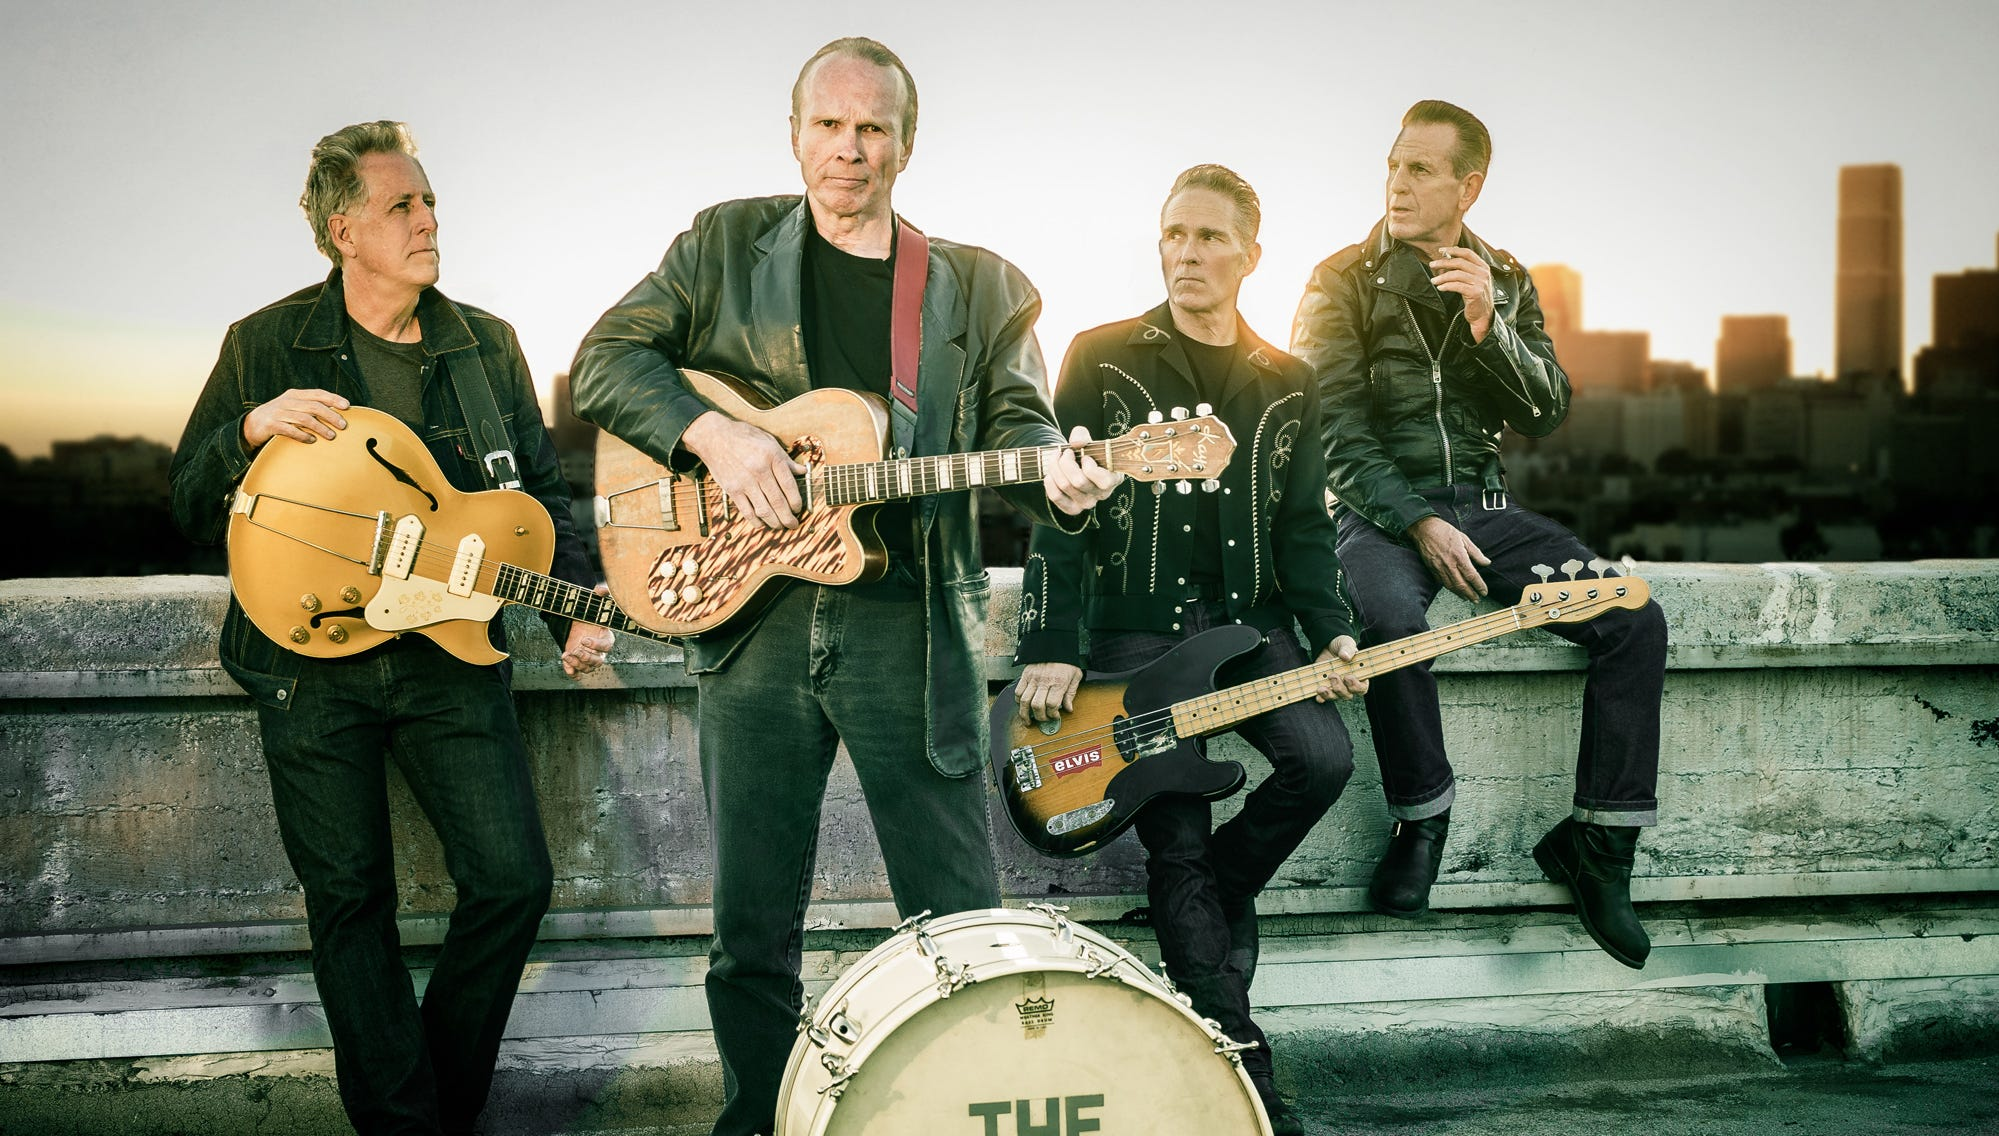 The Blasters will bring their brand of roots-rock to the Stanhope House on Sunday, August 19. The group, which formed in 1978, still features original members Phil Alvin on guitar and vocals, Bill Bateman on drums, and John Bazz on bass.